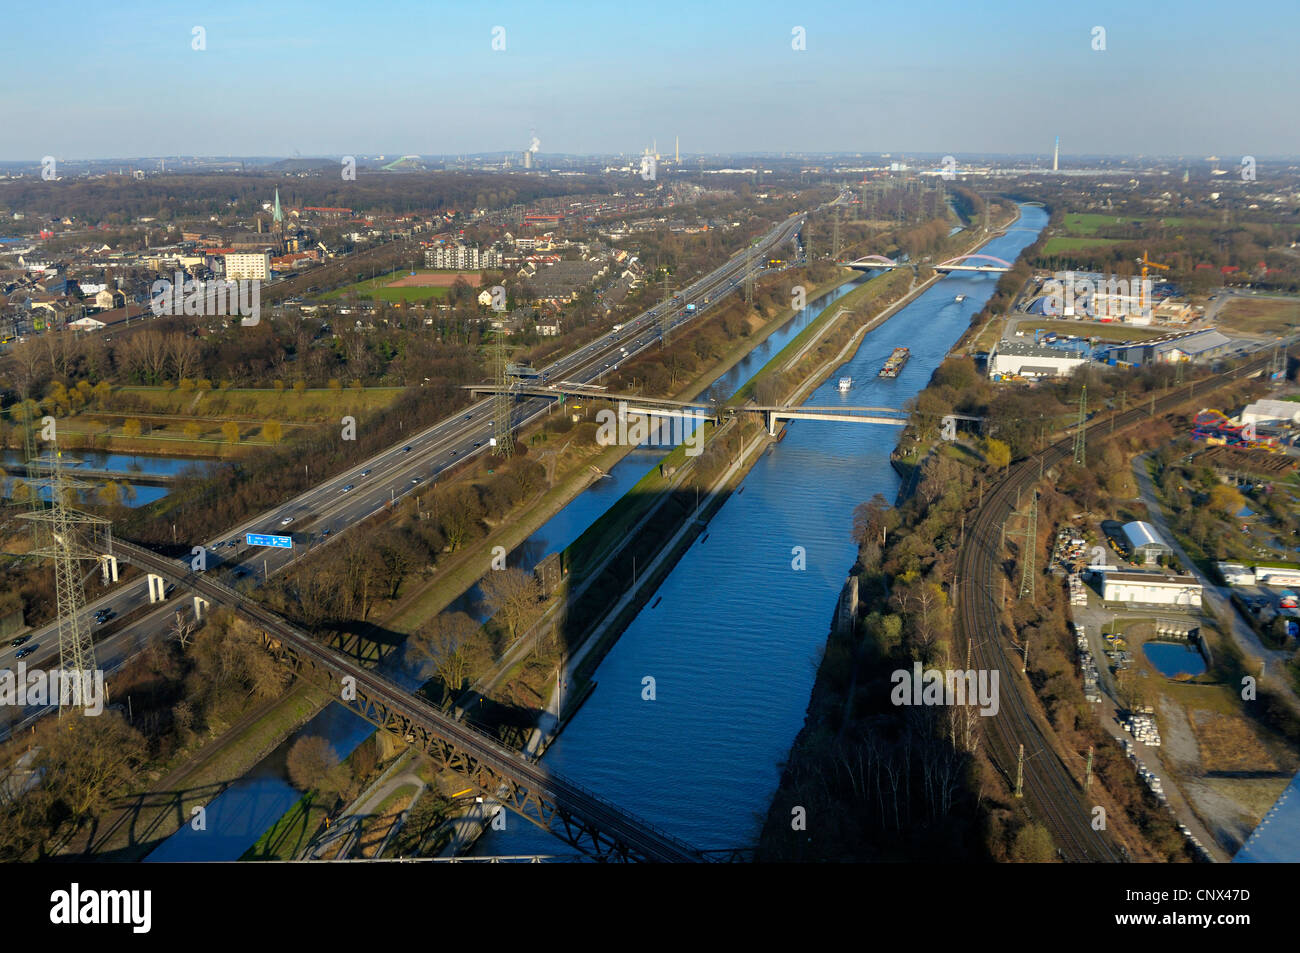 view from gasometer of Rhein Herne chanel, Emscher river, and highway A42, Germany, North Rhine-Westphalia, Ruhr - Stock Image